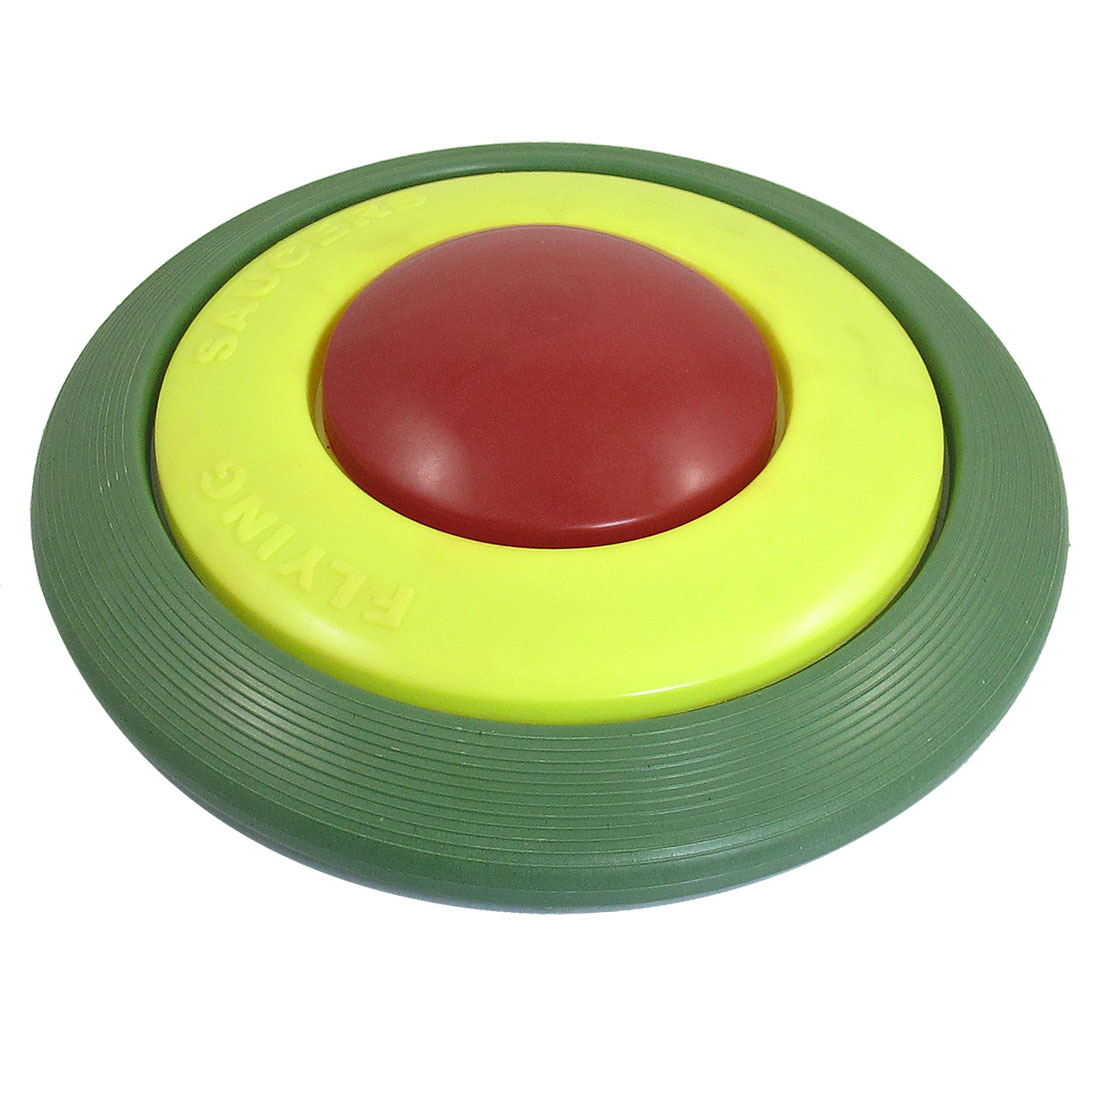 "Child Kid Plastic 8.7"" Dia Flying Round Disc Frisbee Toy Green Yellow Red"